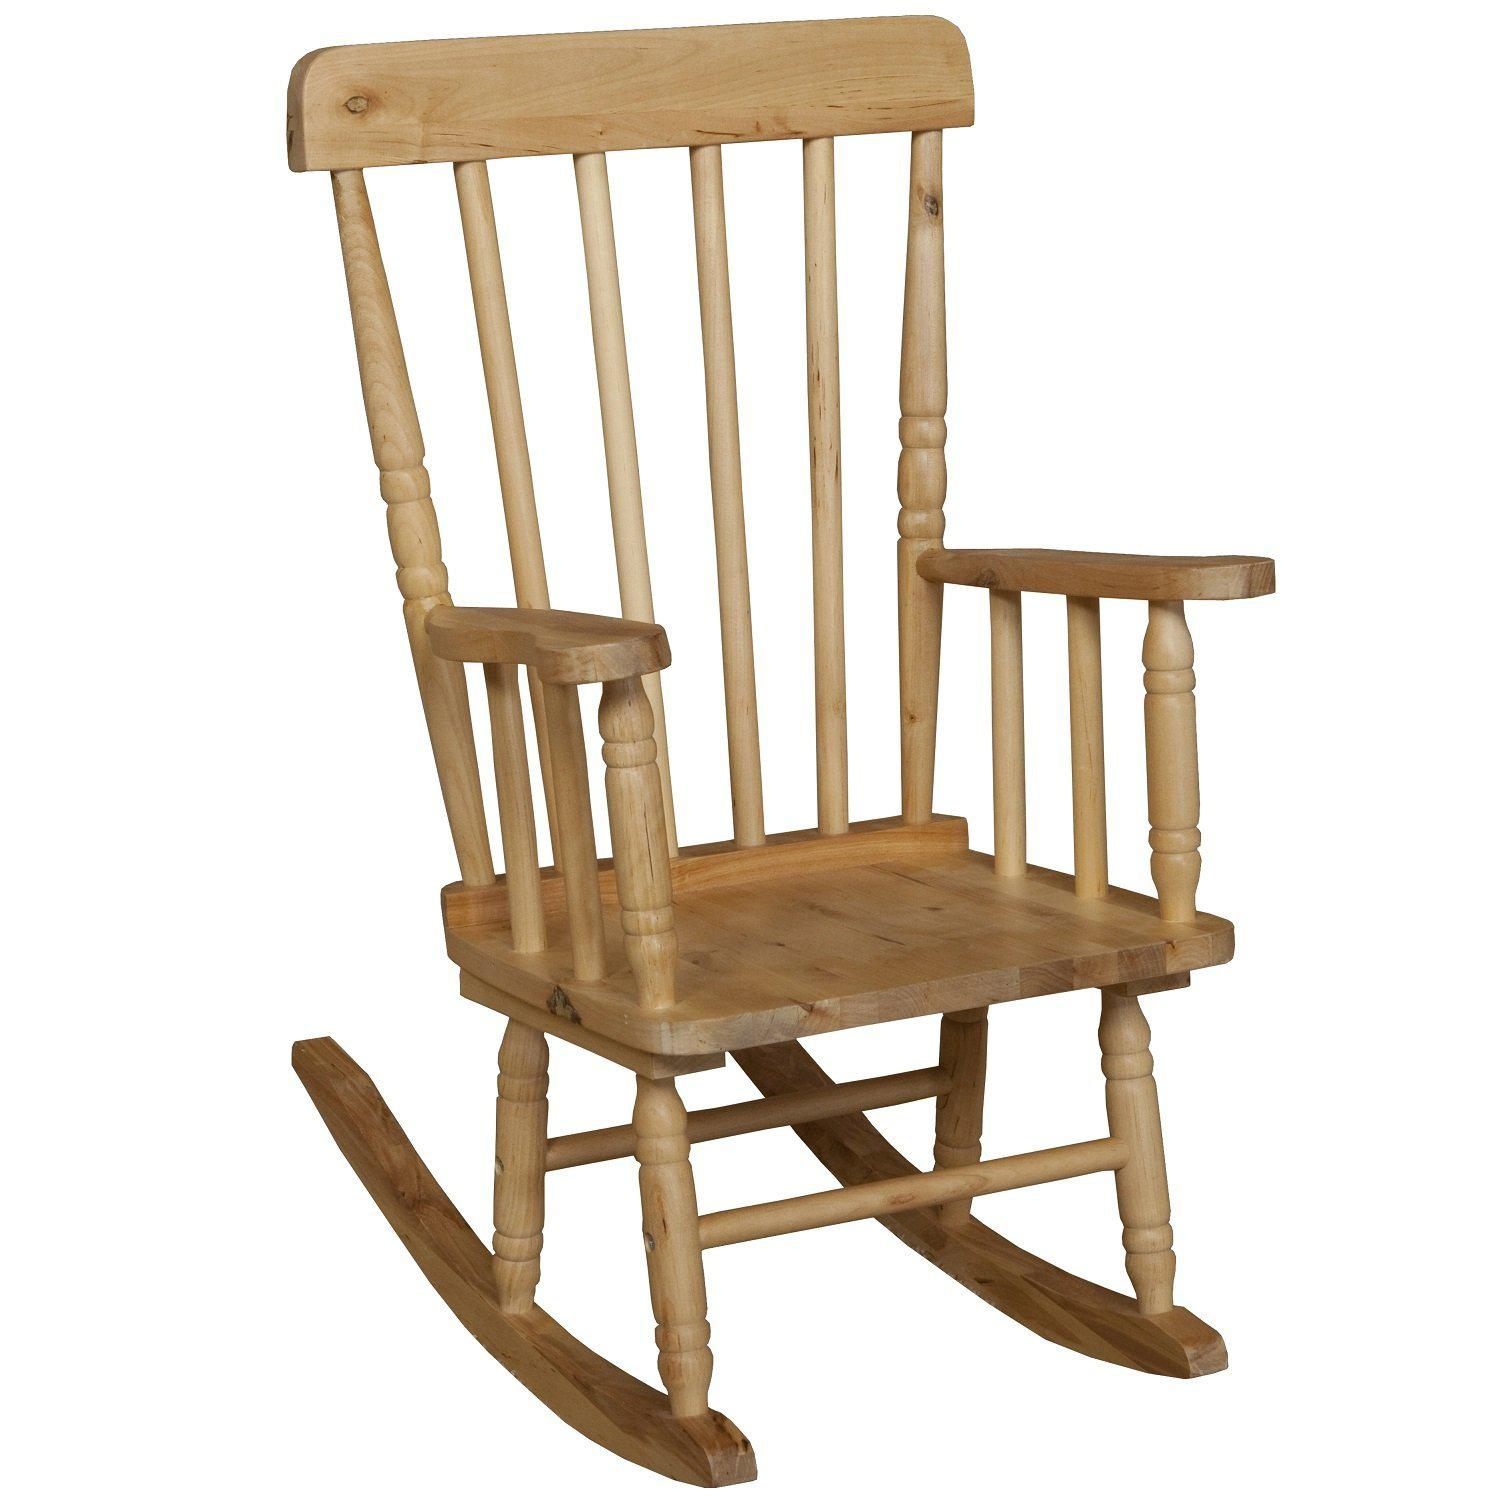 "Wood Designs Children's Rocker 10""H Seat"